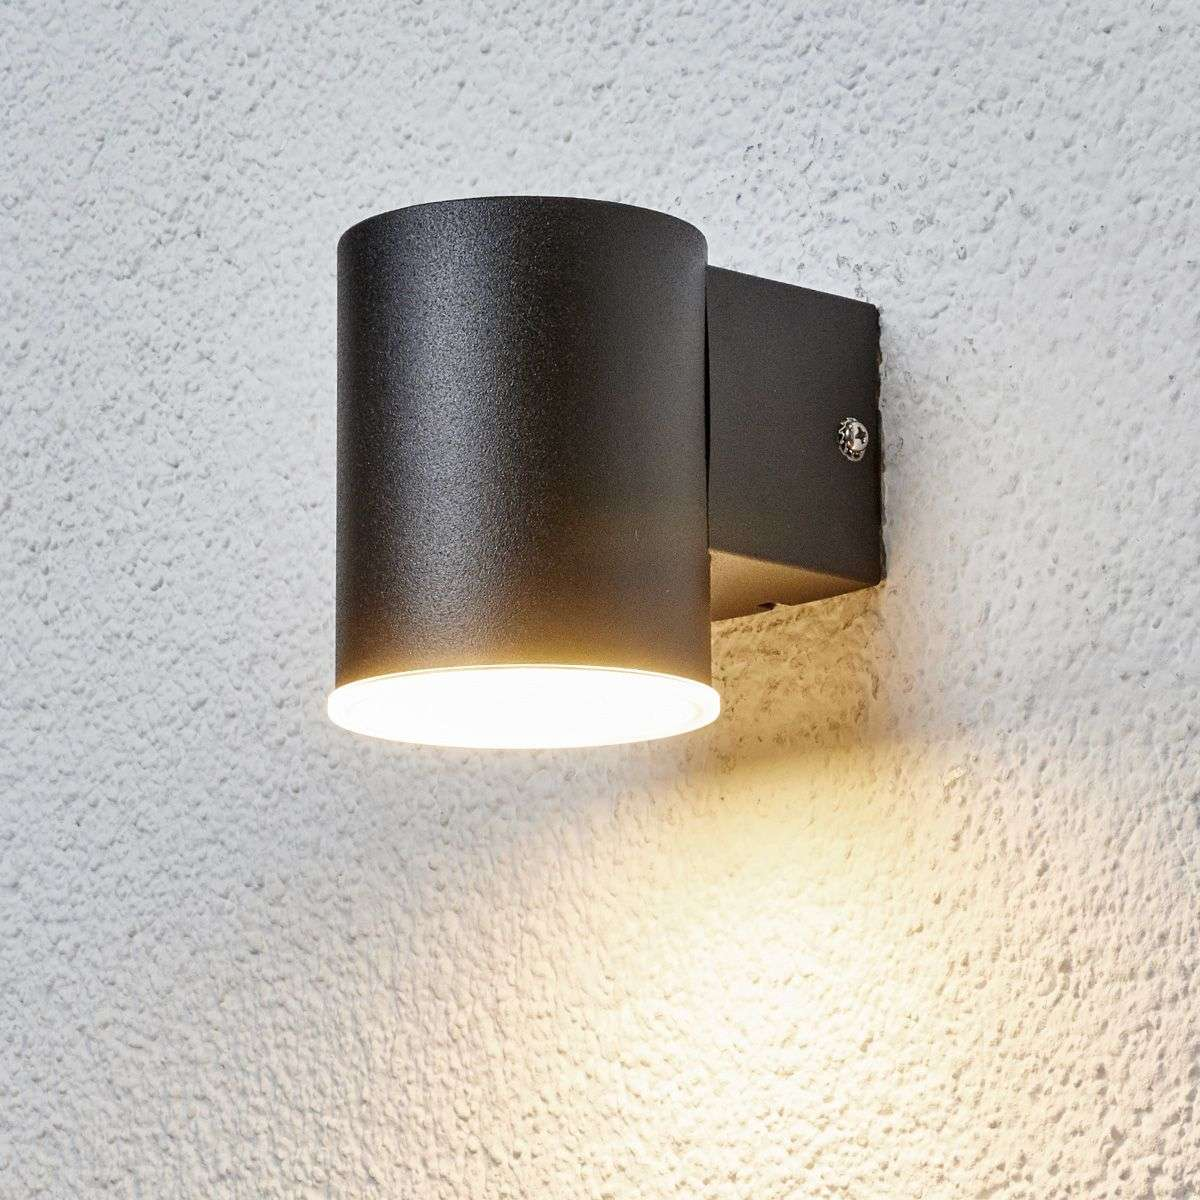 Compra sencilla l mpara pared exterior led morena negra for Lamparas led para exteriores